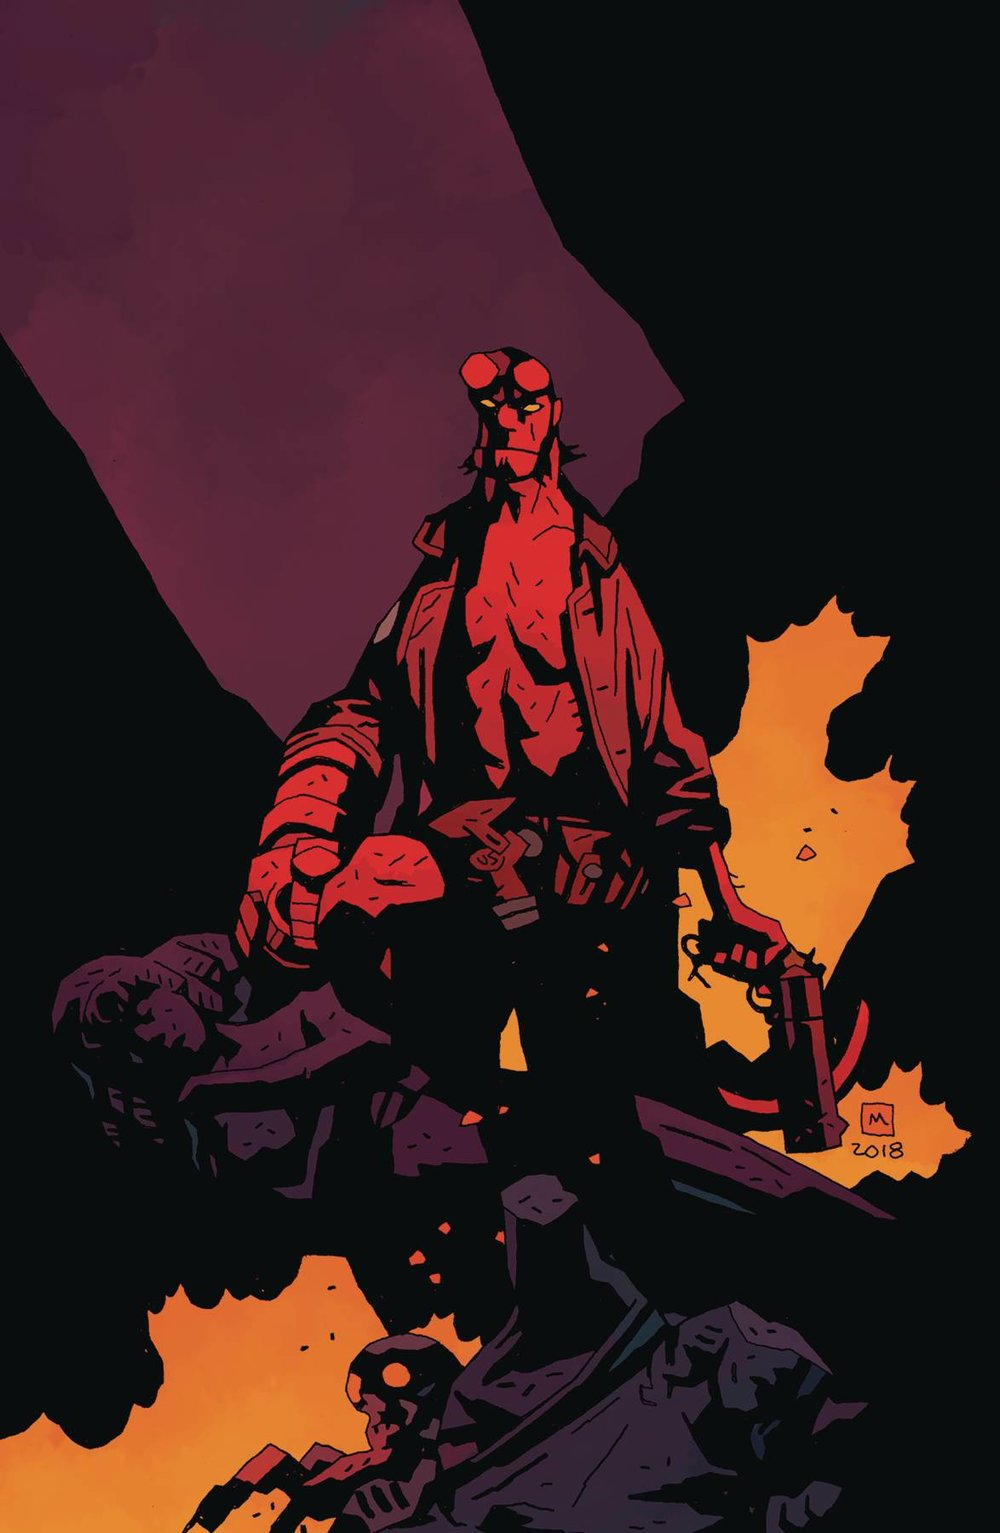 HELLBOY DAY 2019 SEED OF DESTRUCTION